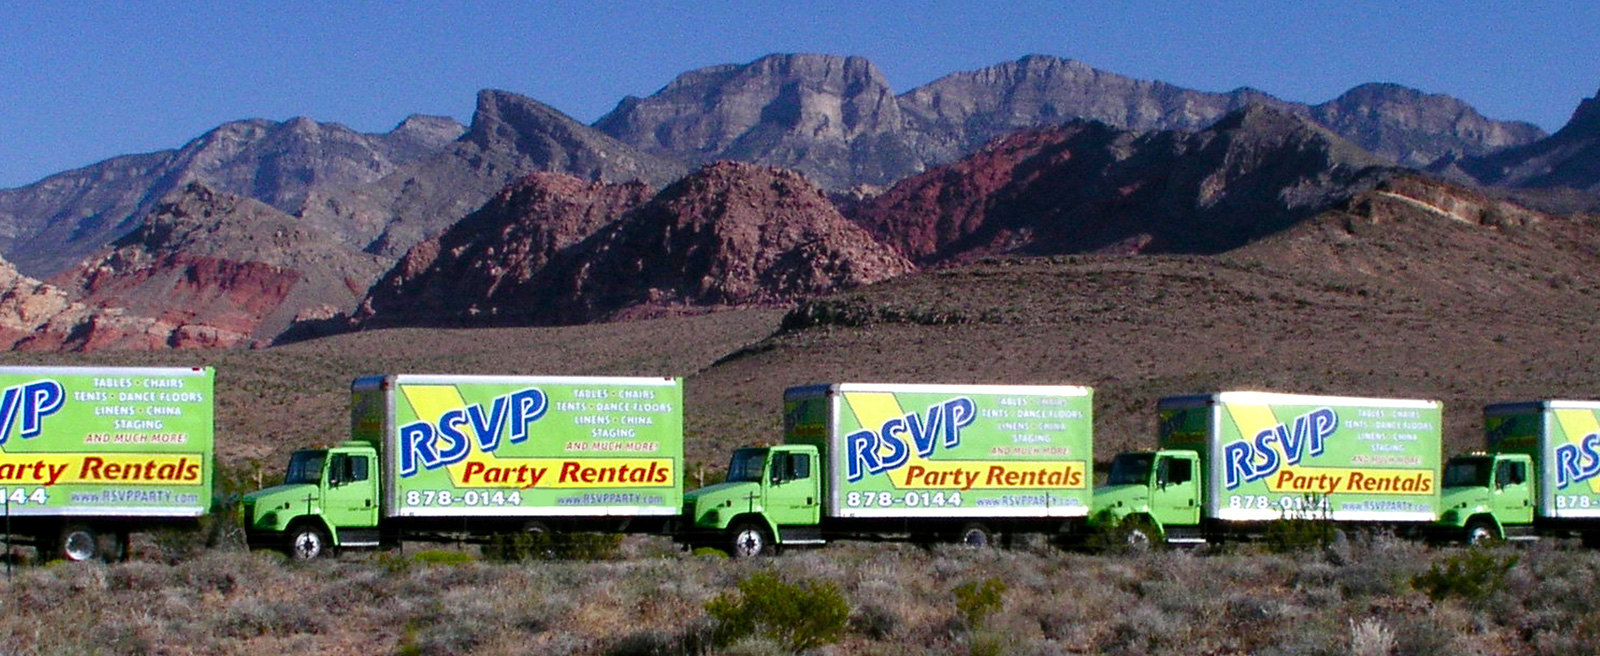 rsvp party rentals nevada s largest party rental company